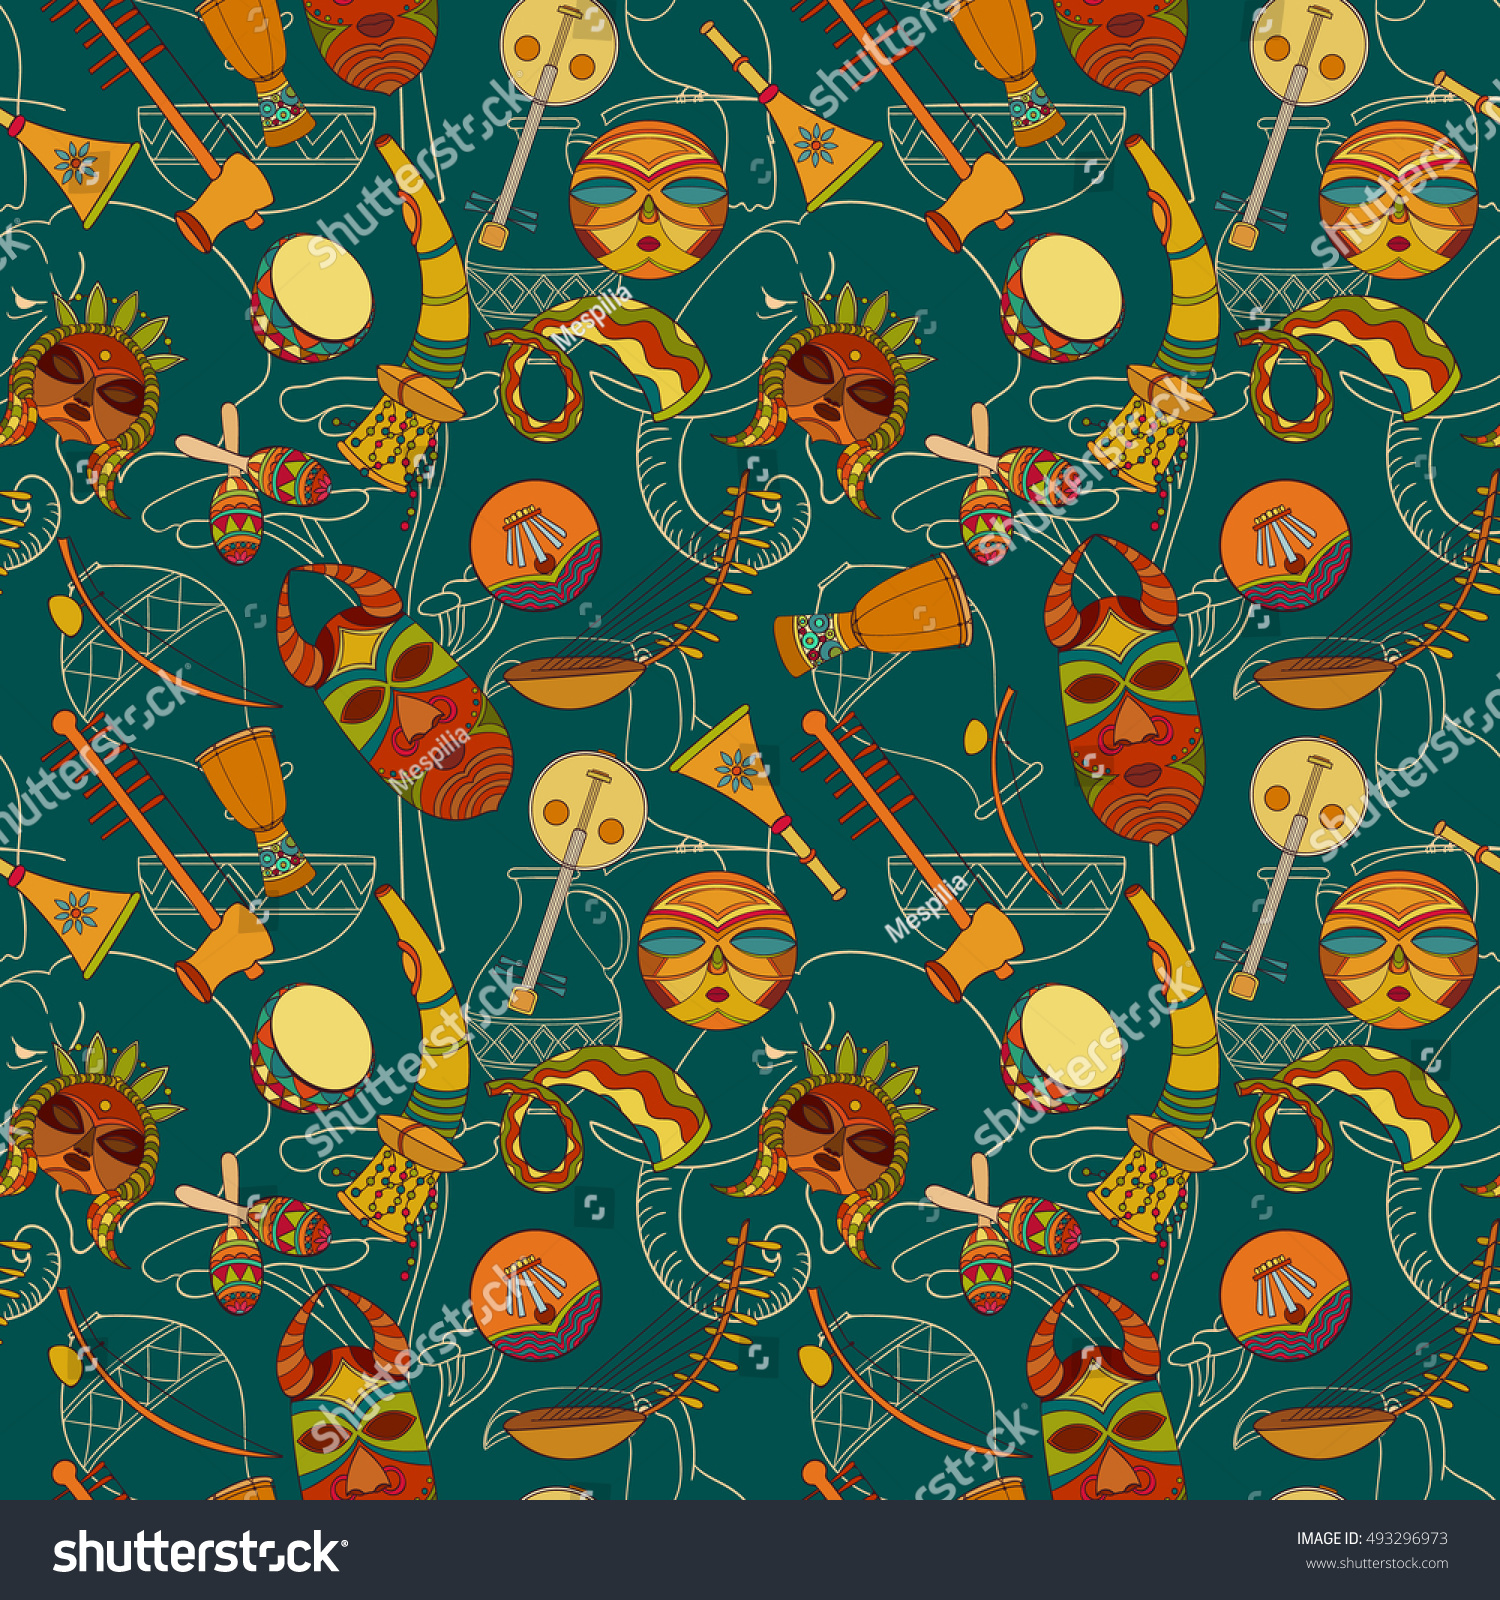 Simple Wallpaper Music Pattern - stock-vector-hand-drawn-seamless-africa-music-pattern-vector-illustration-can-be-used-for-wallpaper-website-493296973  Best Photo Reference_234124.jpg